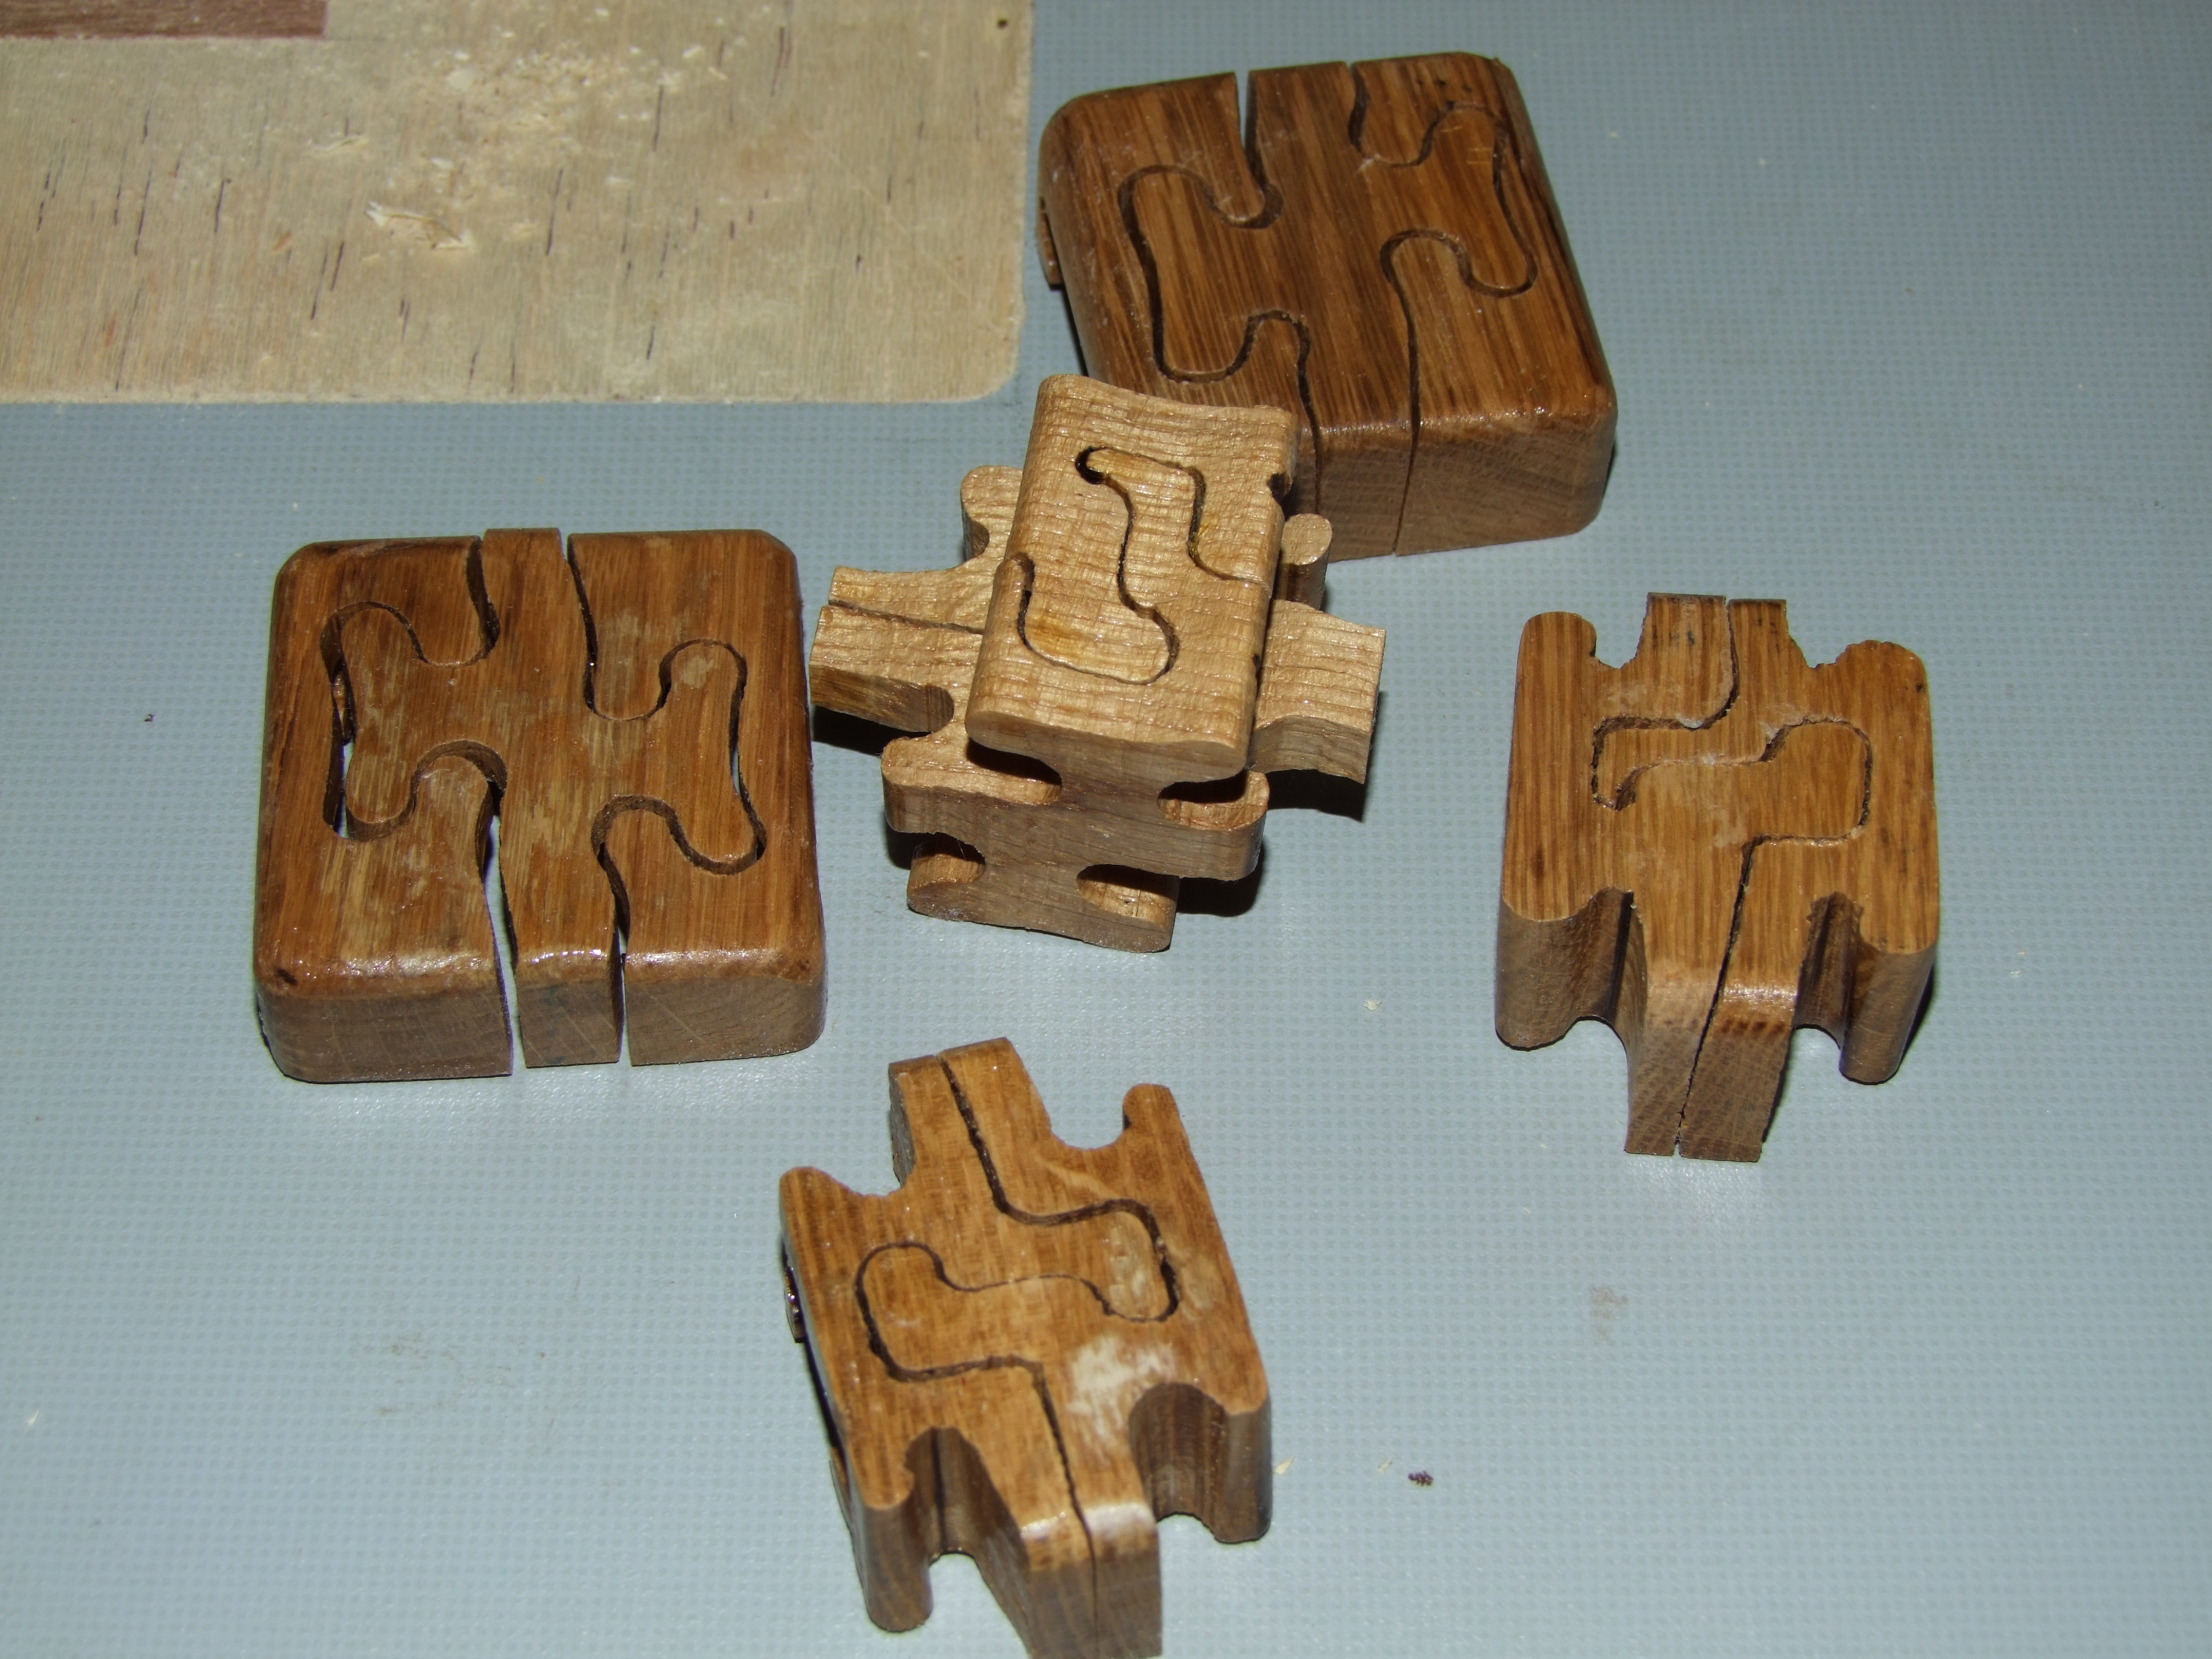 Scroll Saw Projects For Beginners Free Scroll Saw Patterns Pictures to pin on Pinterest